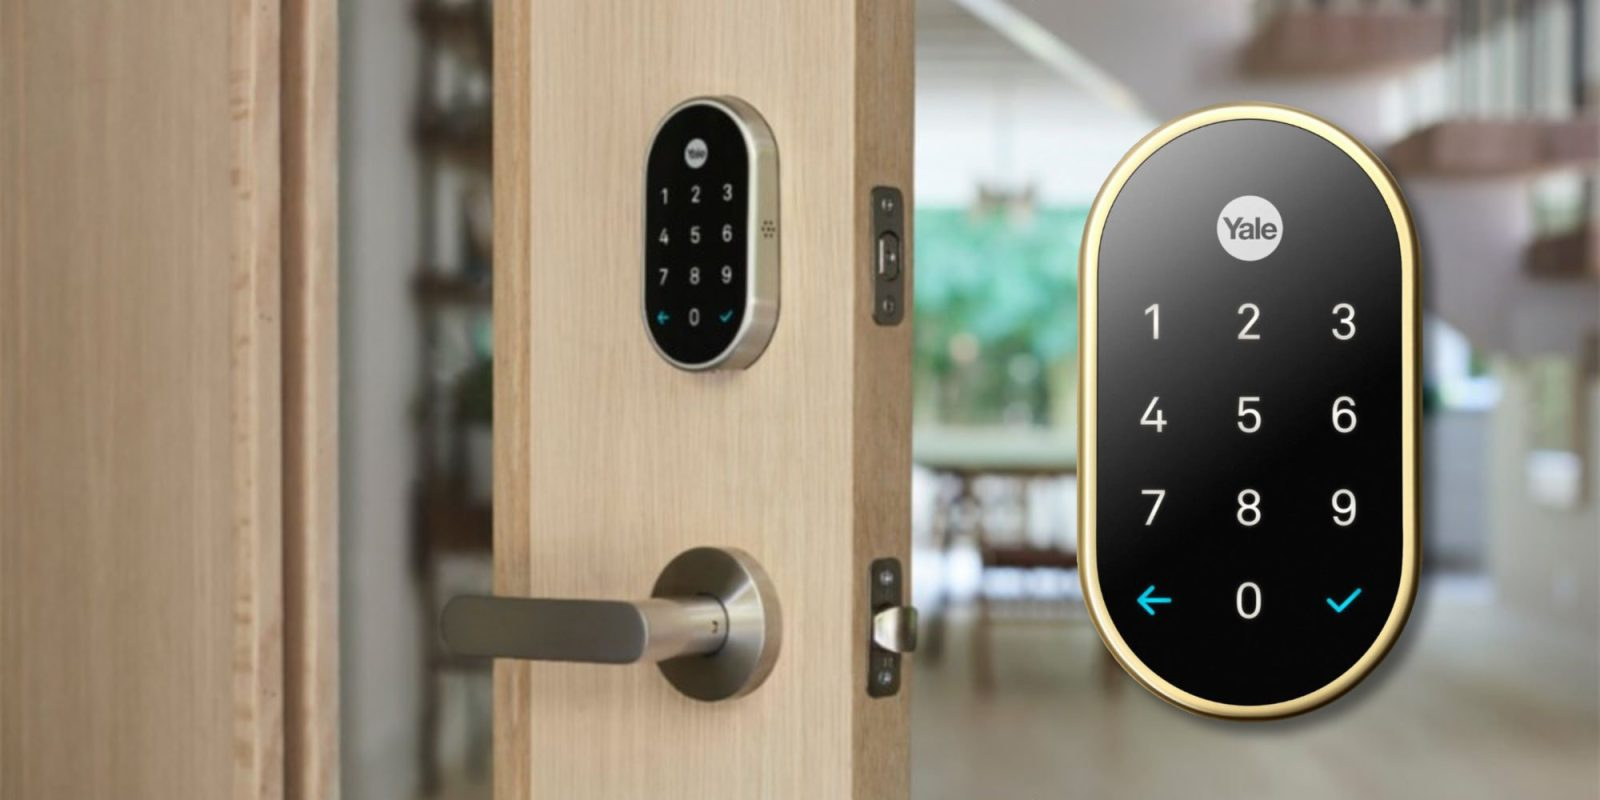 Upgrade your smart home with Nest x Yale Smart Lock for $199 (Reg. $280)